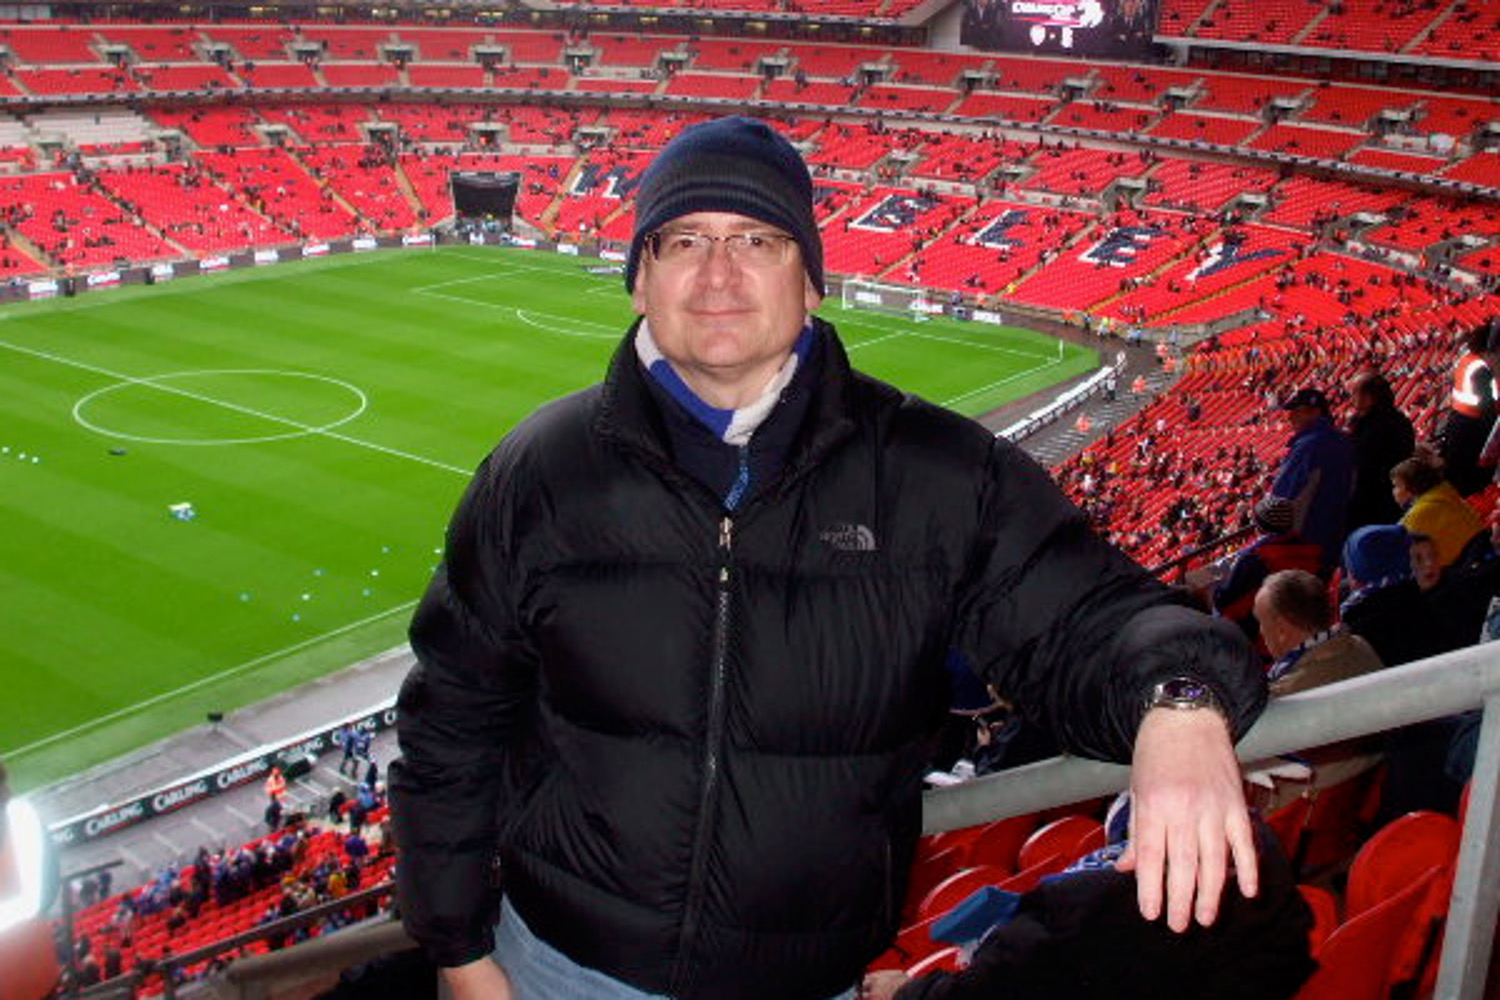 Adrian at the Carling Cup final at Wembley in 2011